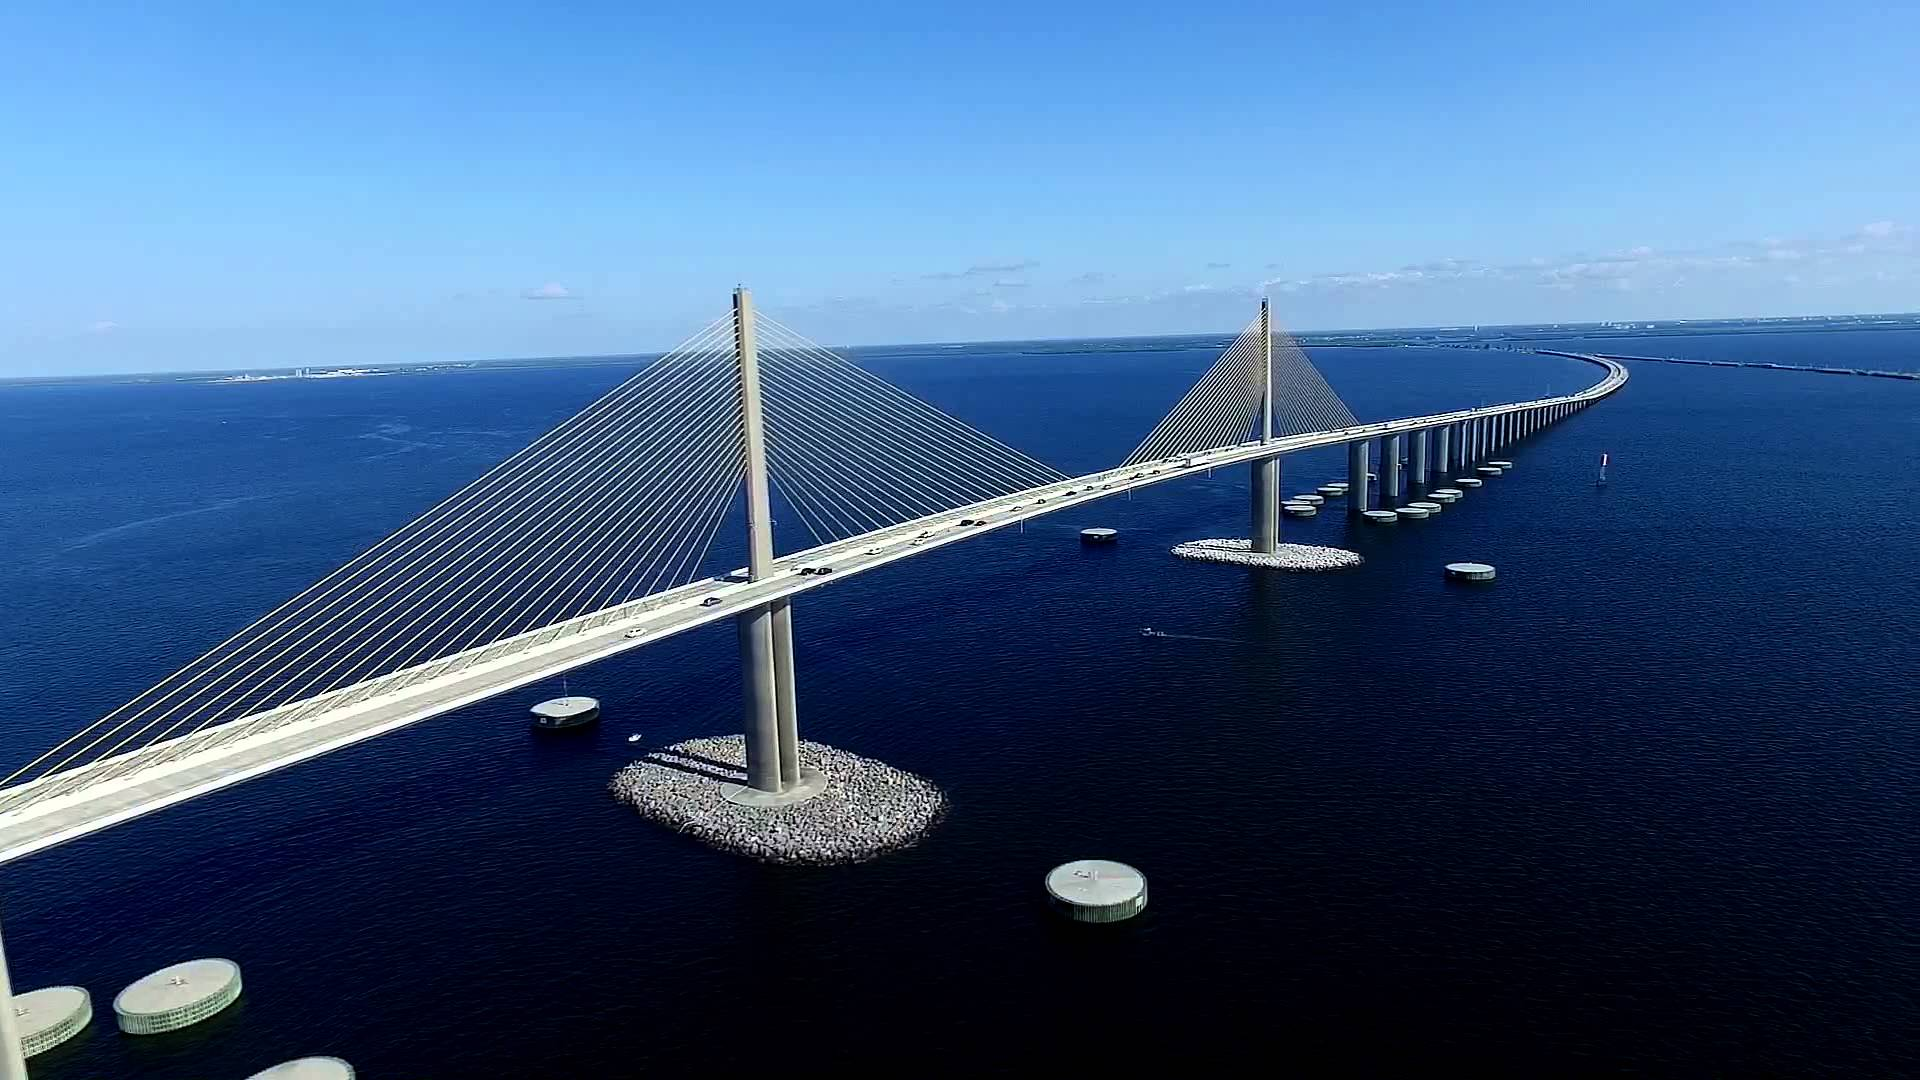 https://www.fgbolaw.com/wp-content/uploads/2019/08/skyway-bridge-1.jpg